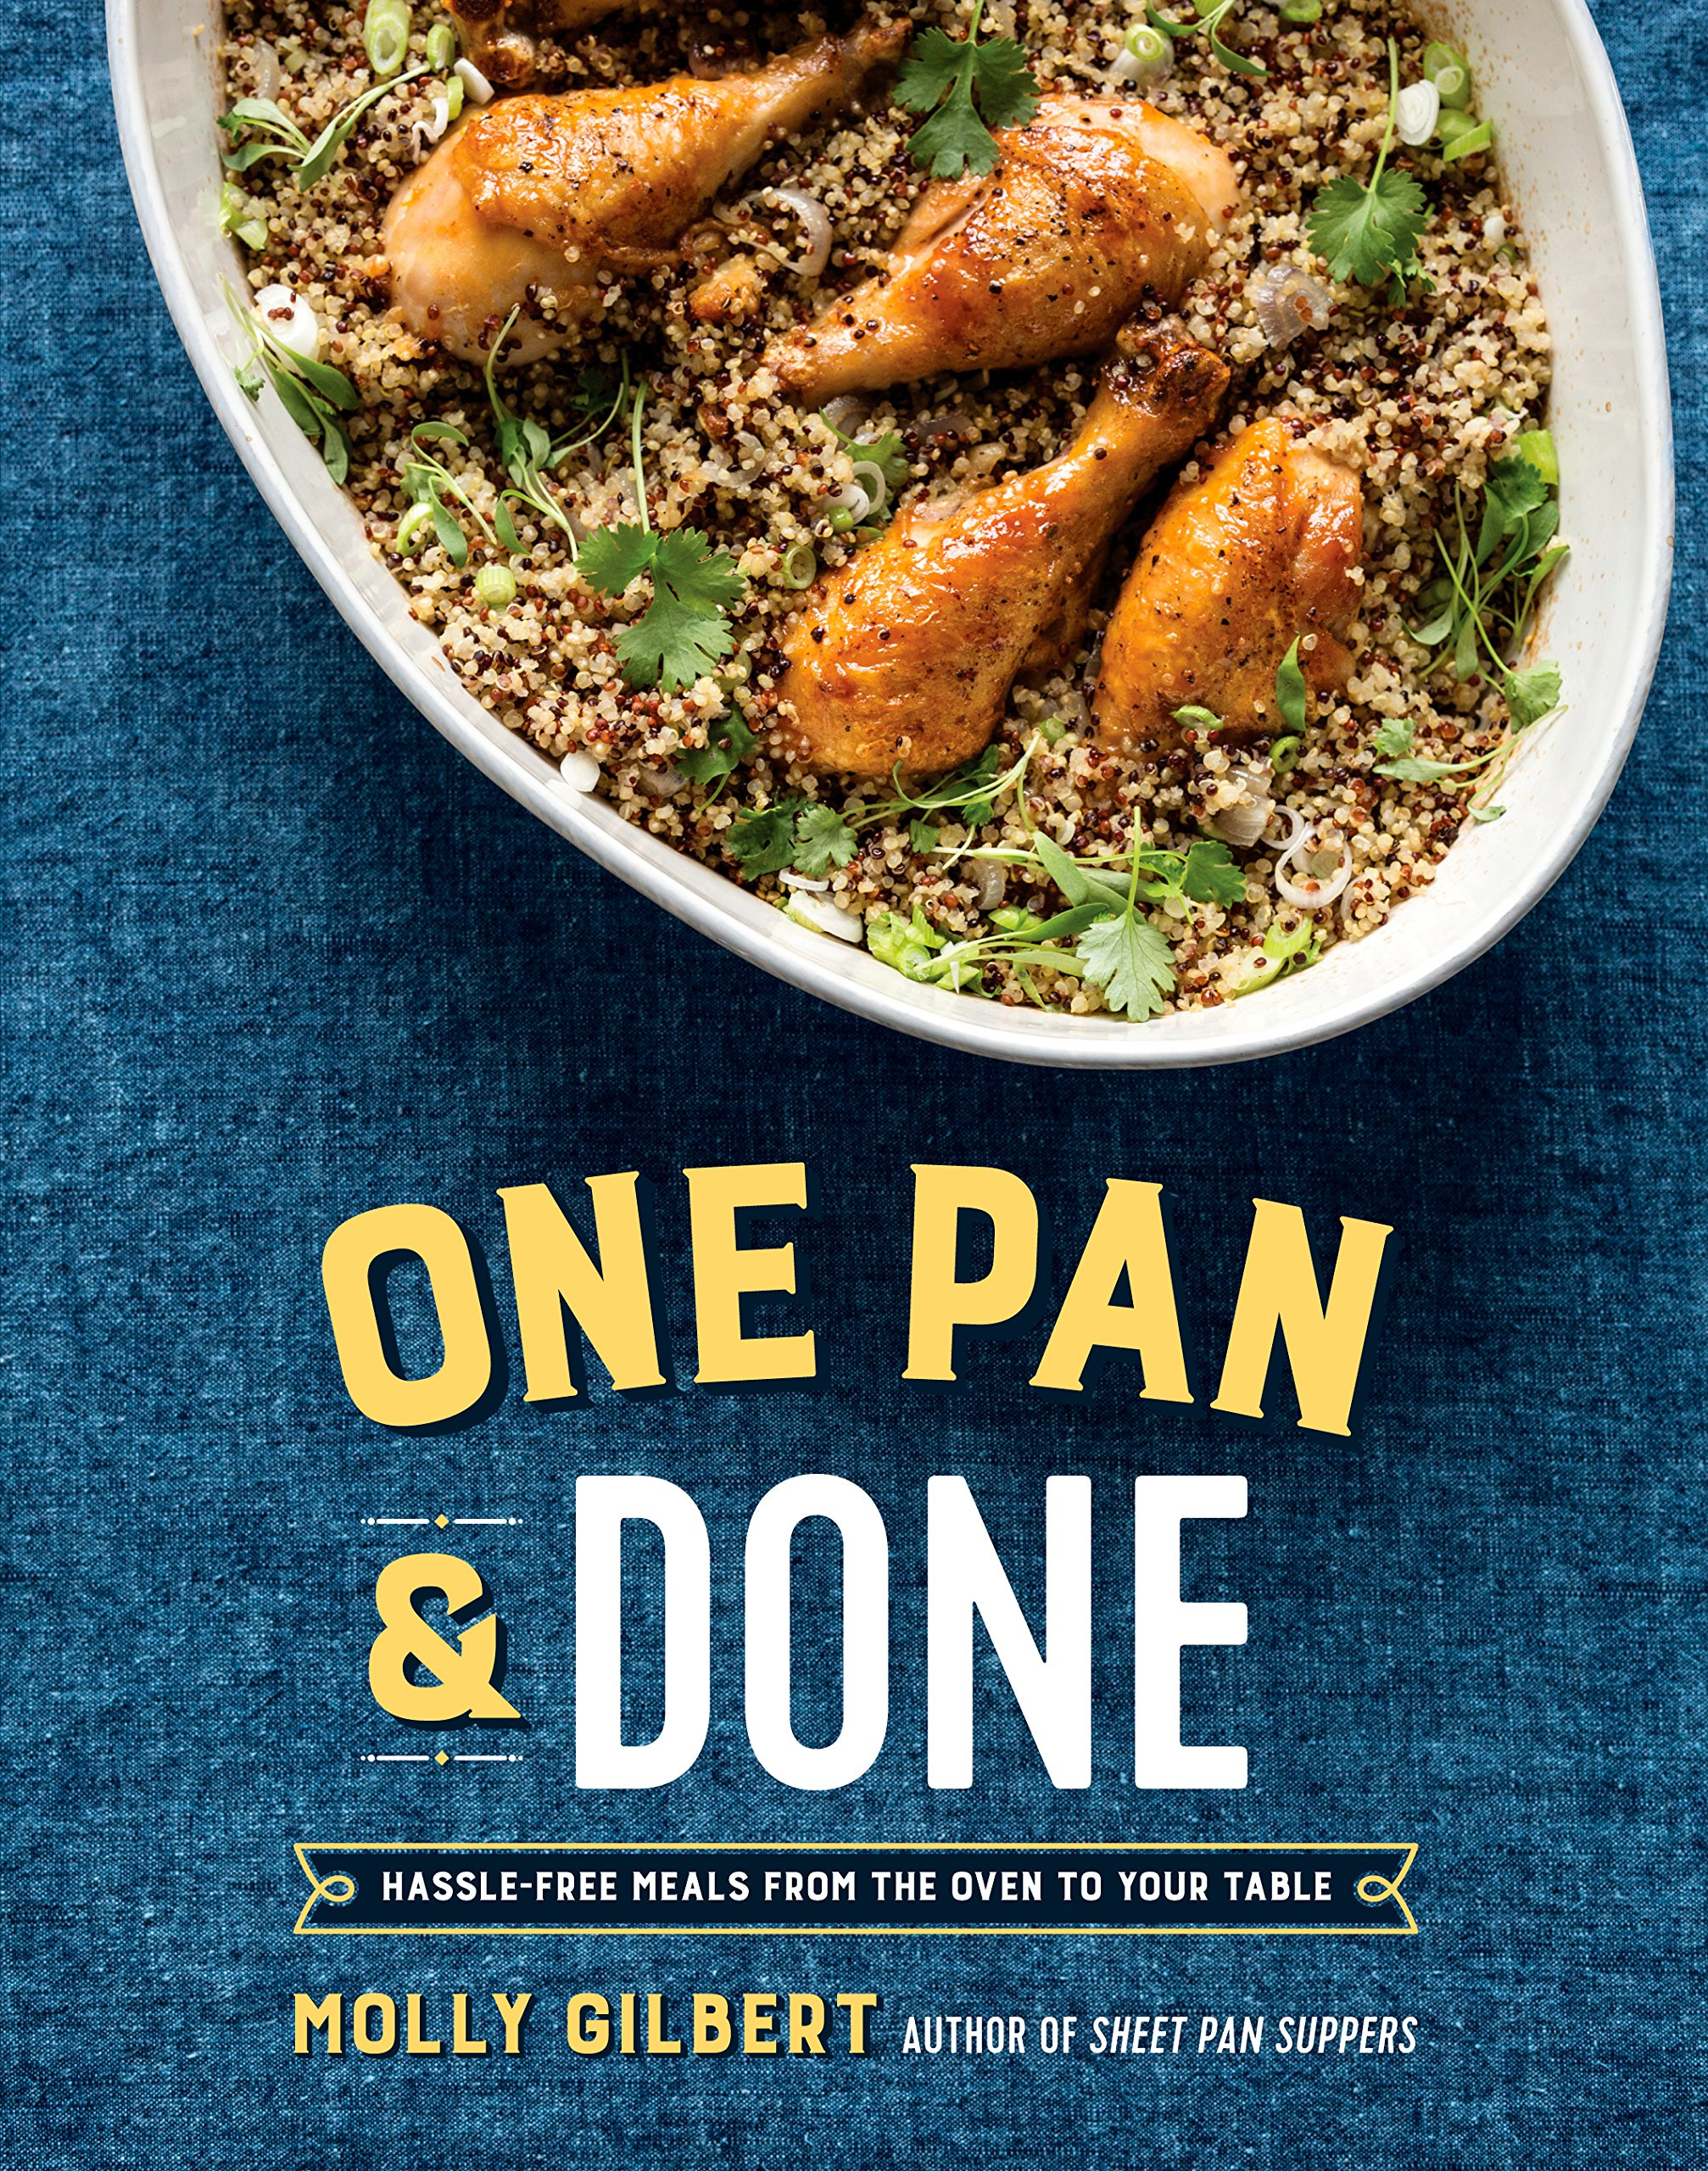 One Pan Done Hassle Free Meals product image